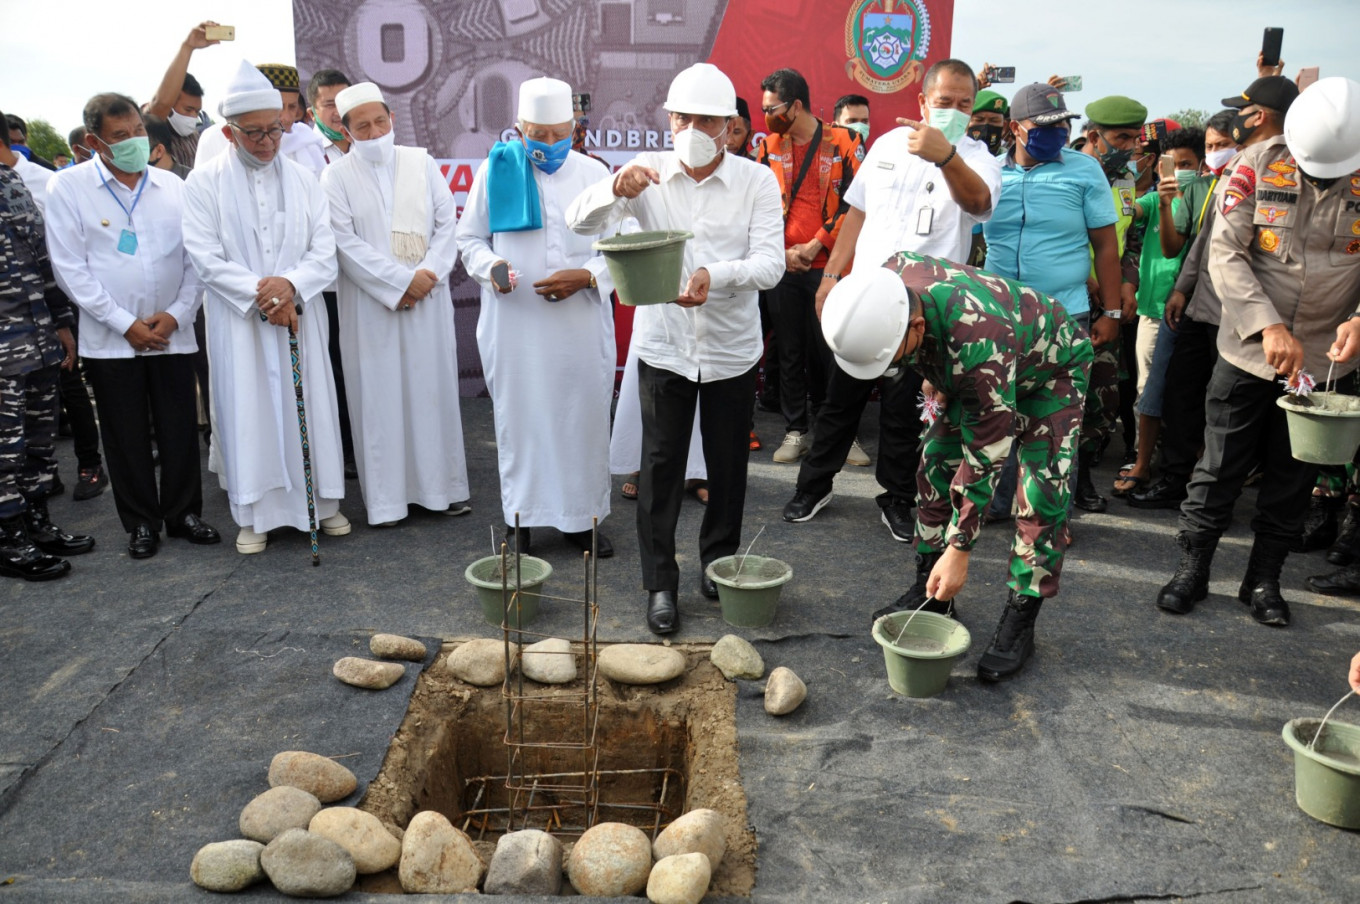 North Sumatra kicks off construction of Rp 8.6t sports center for 2024 PON